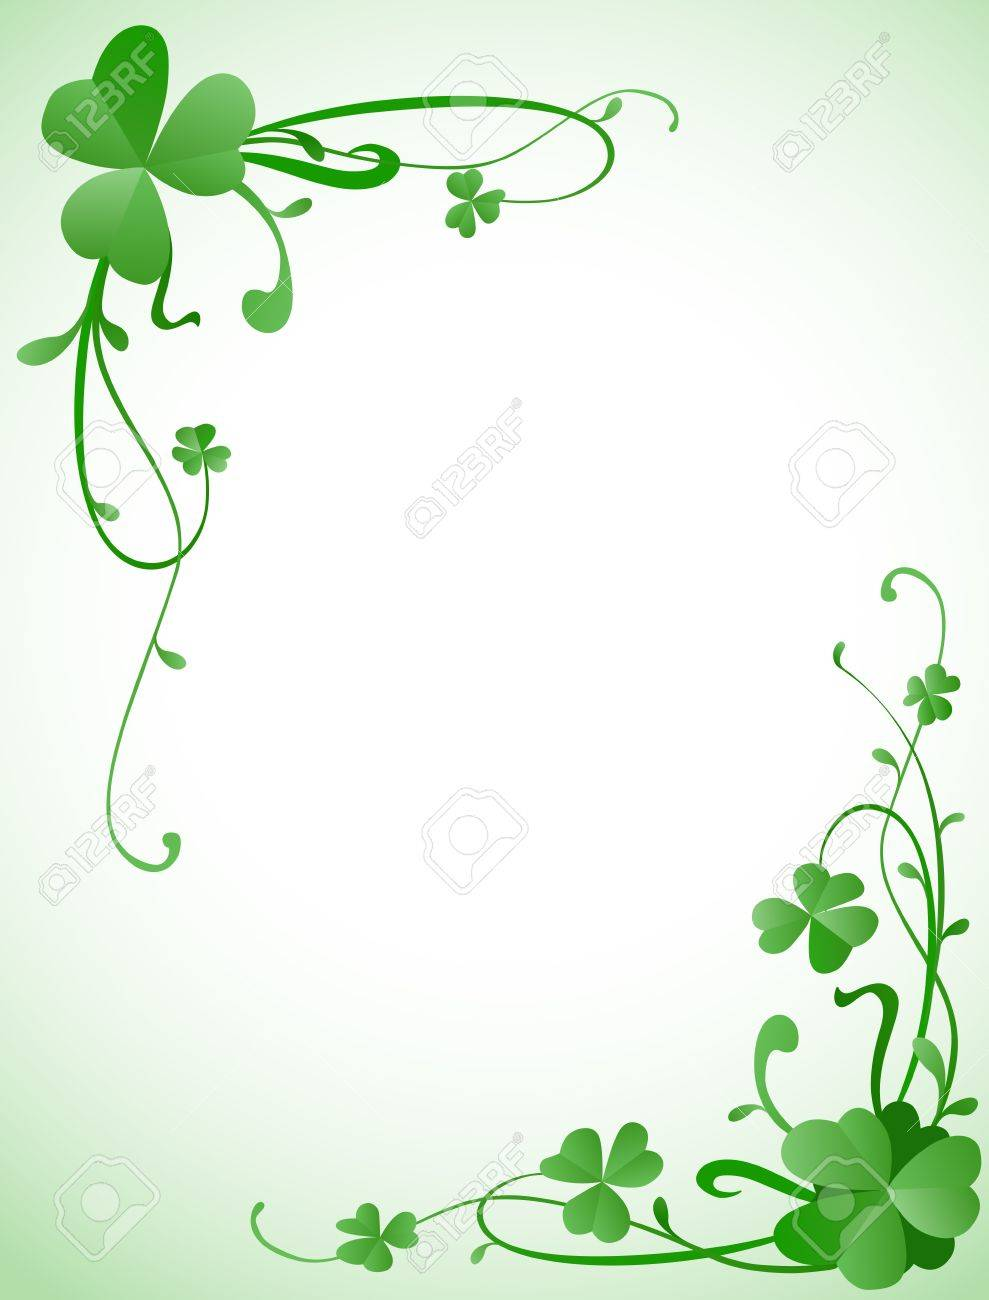 Background Design For St Patricks Day With Three Leaves Clovers Stock Photo